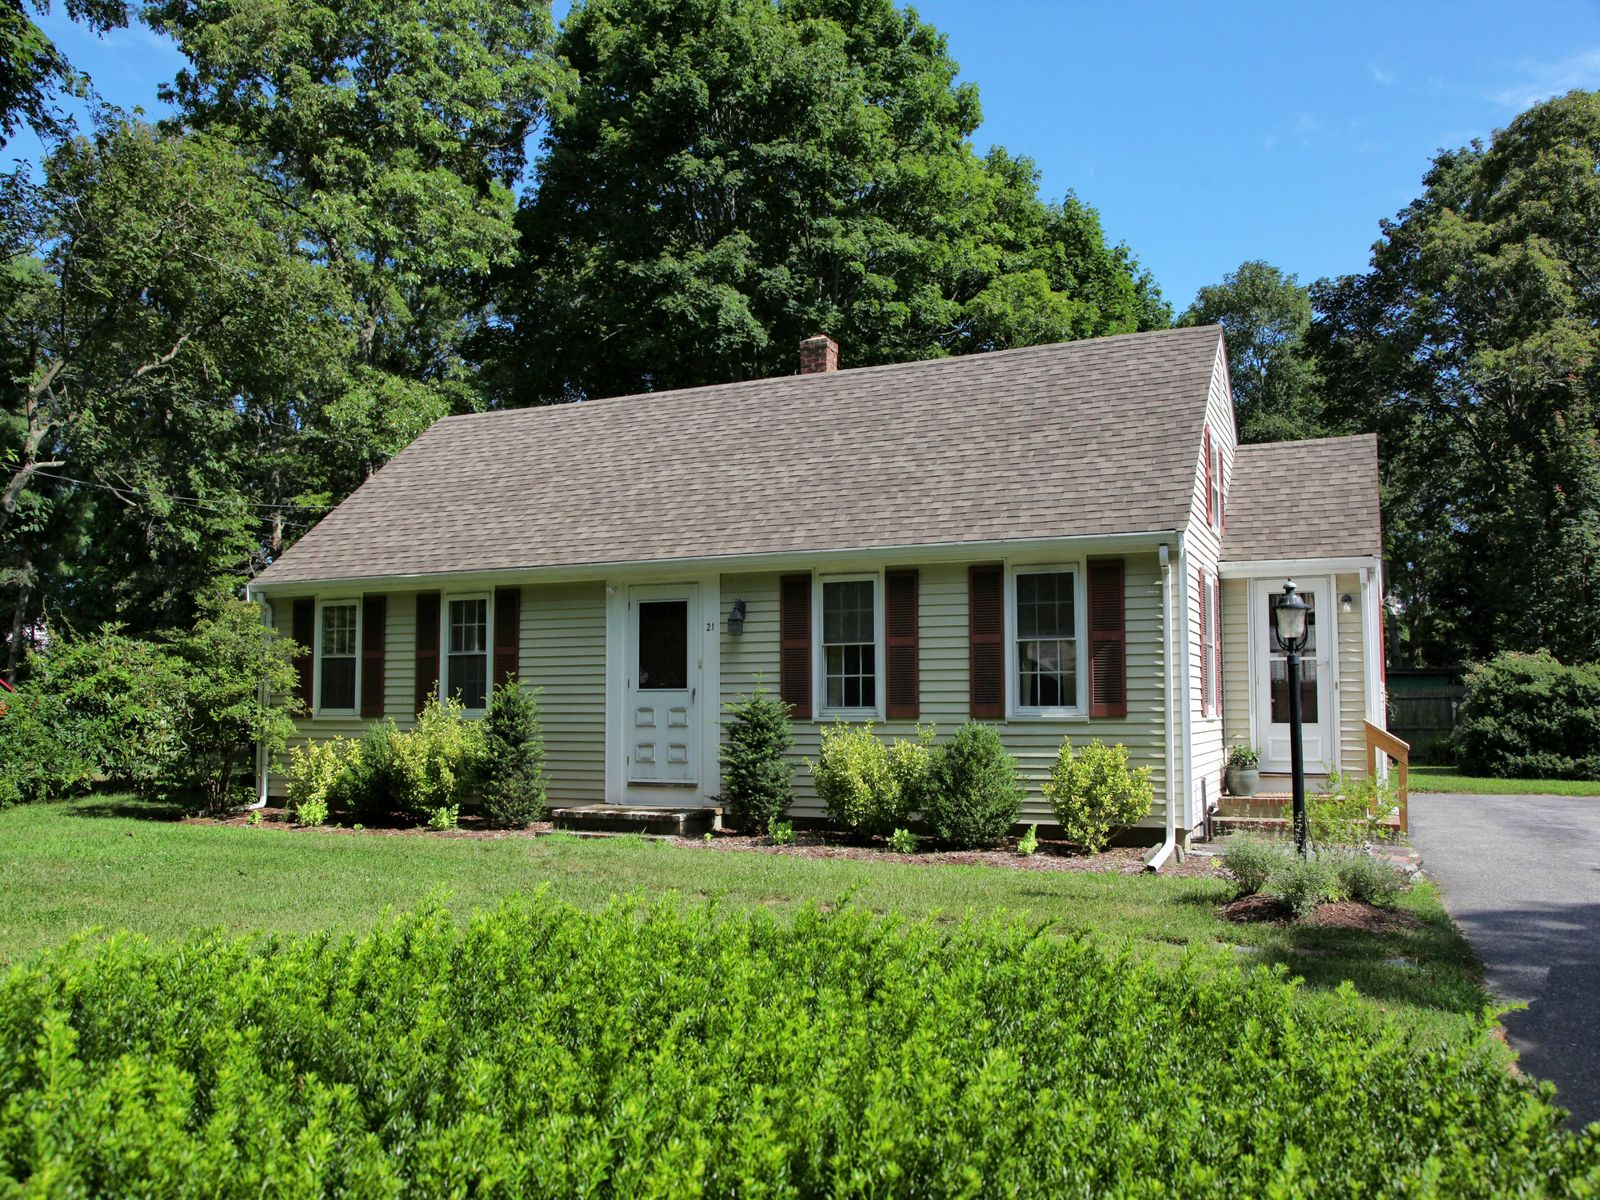 Mint Cape - Stroll to Association Beach, Falmouth MA Single Family Home - Cape Cod Real Estate